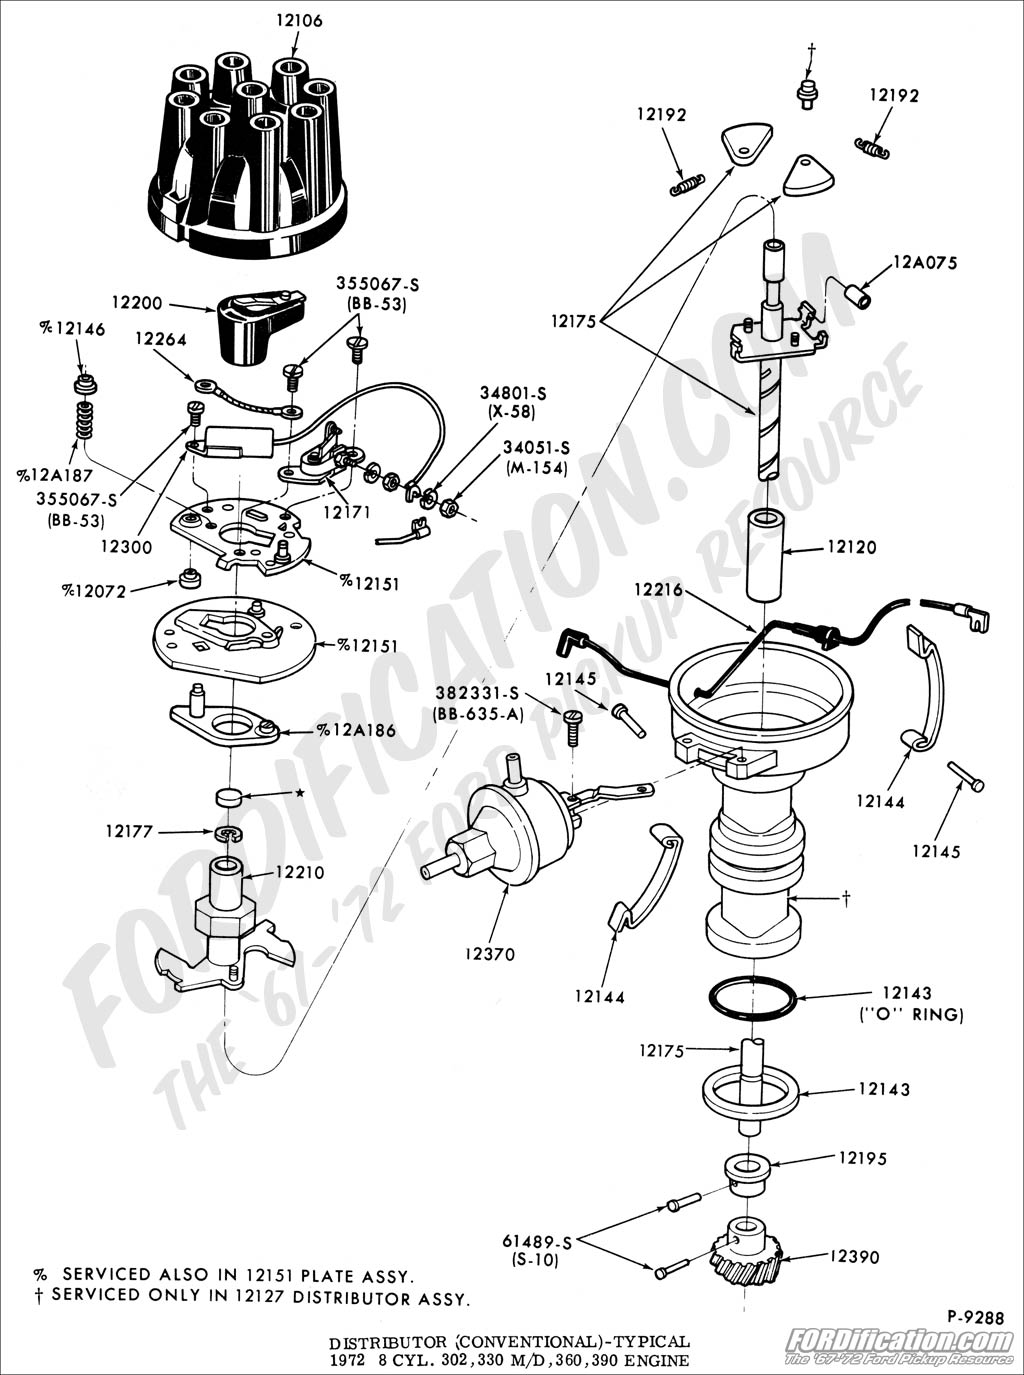 distributor_V8 02 ford truck technical drawings and schematics section i ford 390 engine wiring diagram at reclaimingppi.co